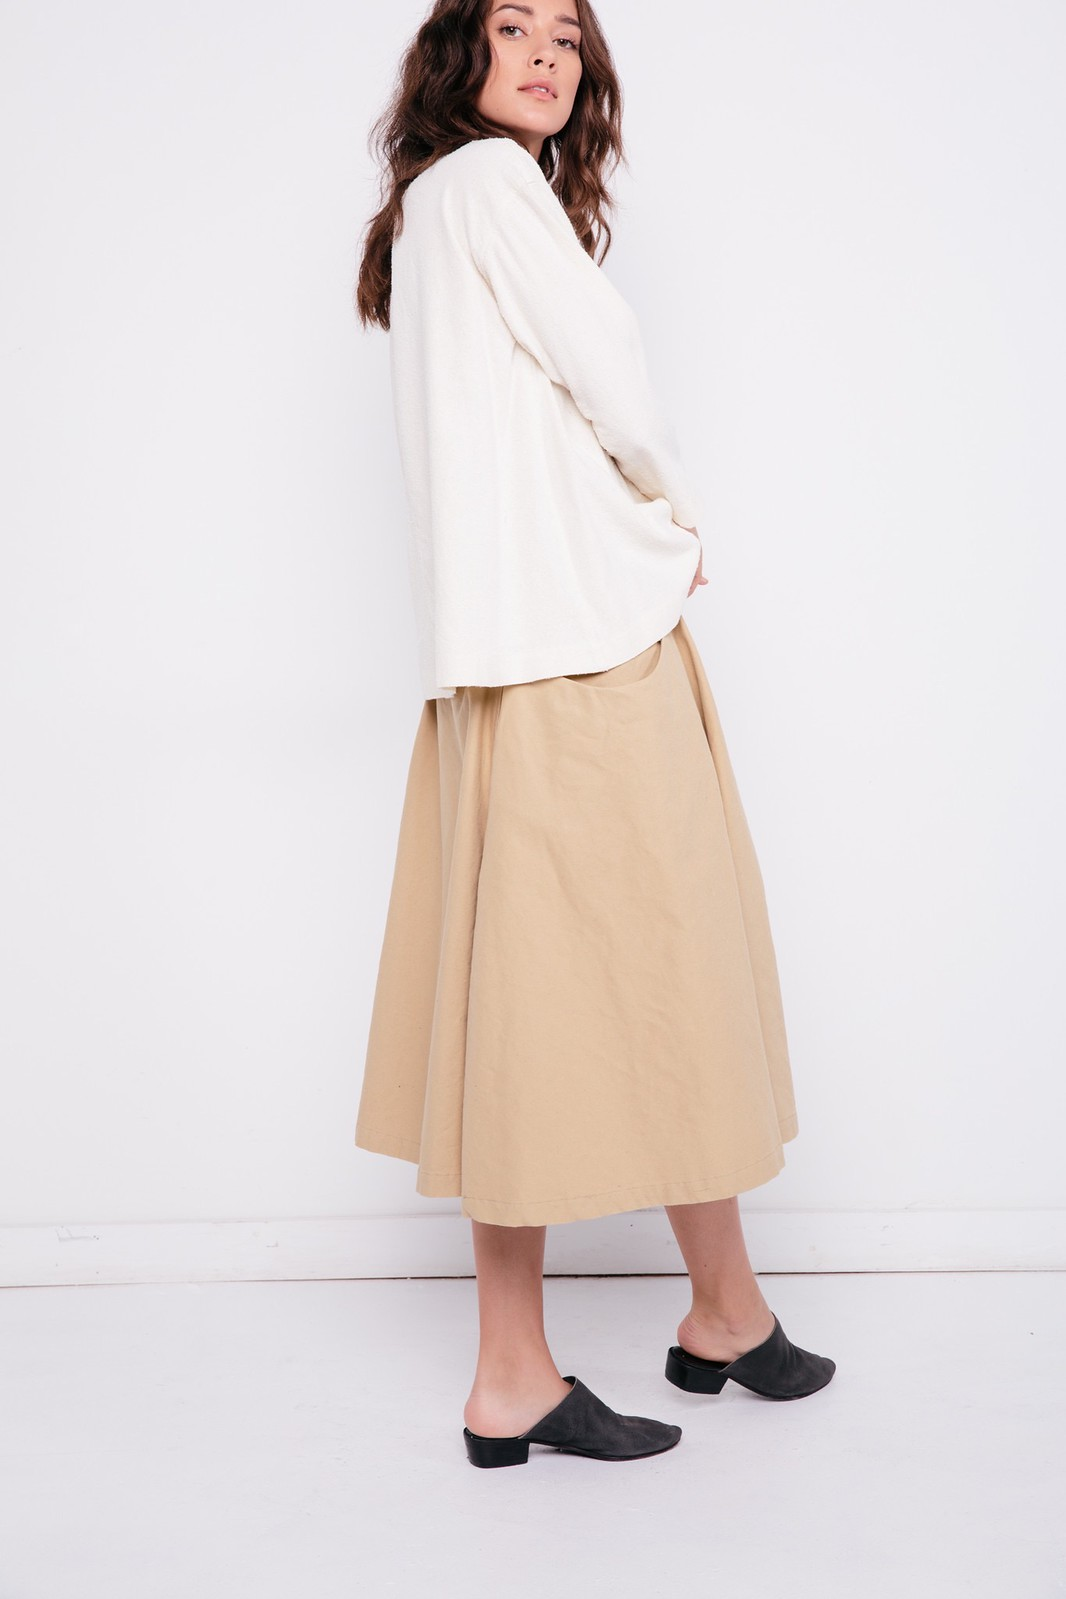 03-elizabeth-suzann-product-clyde-billow-skirt-khaki-cotton